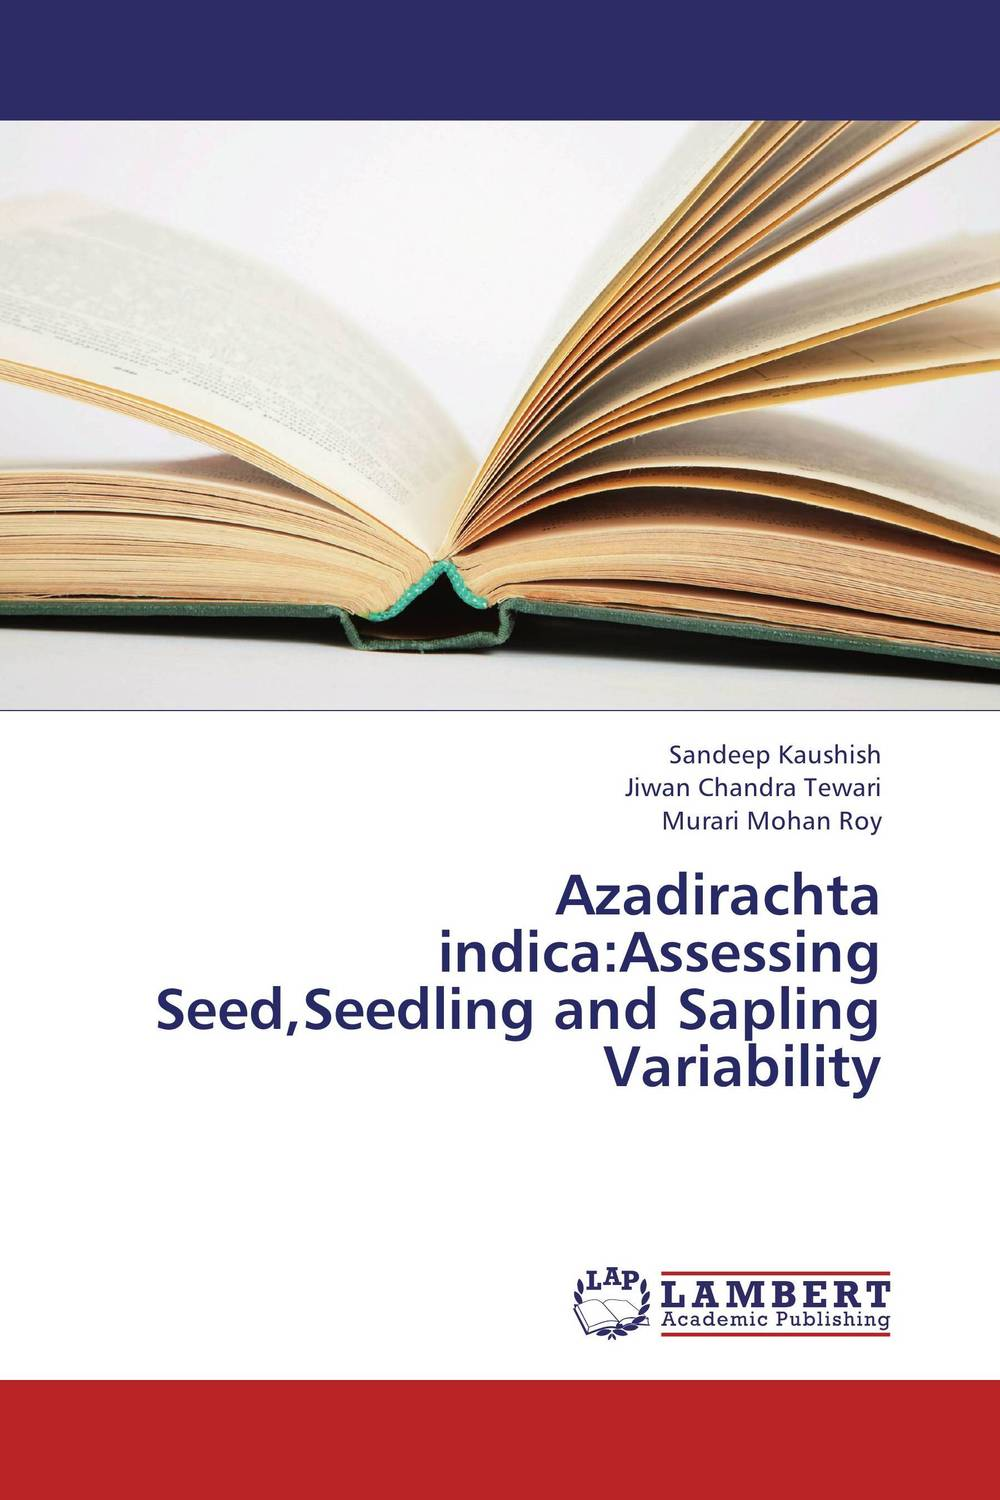 Azadirachta indica:Assessing Seed,Seedling and Sapling Variability seed dormancy and germination